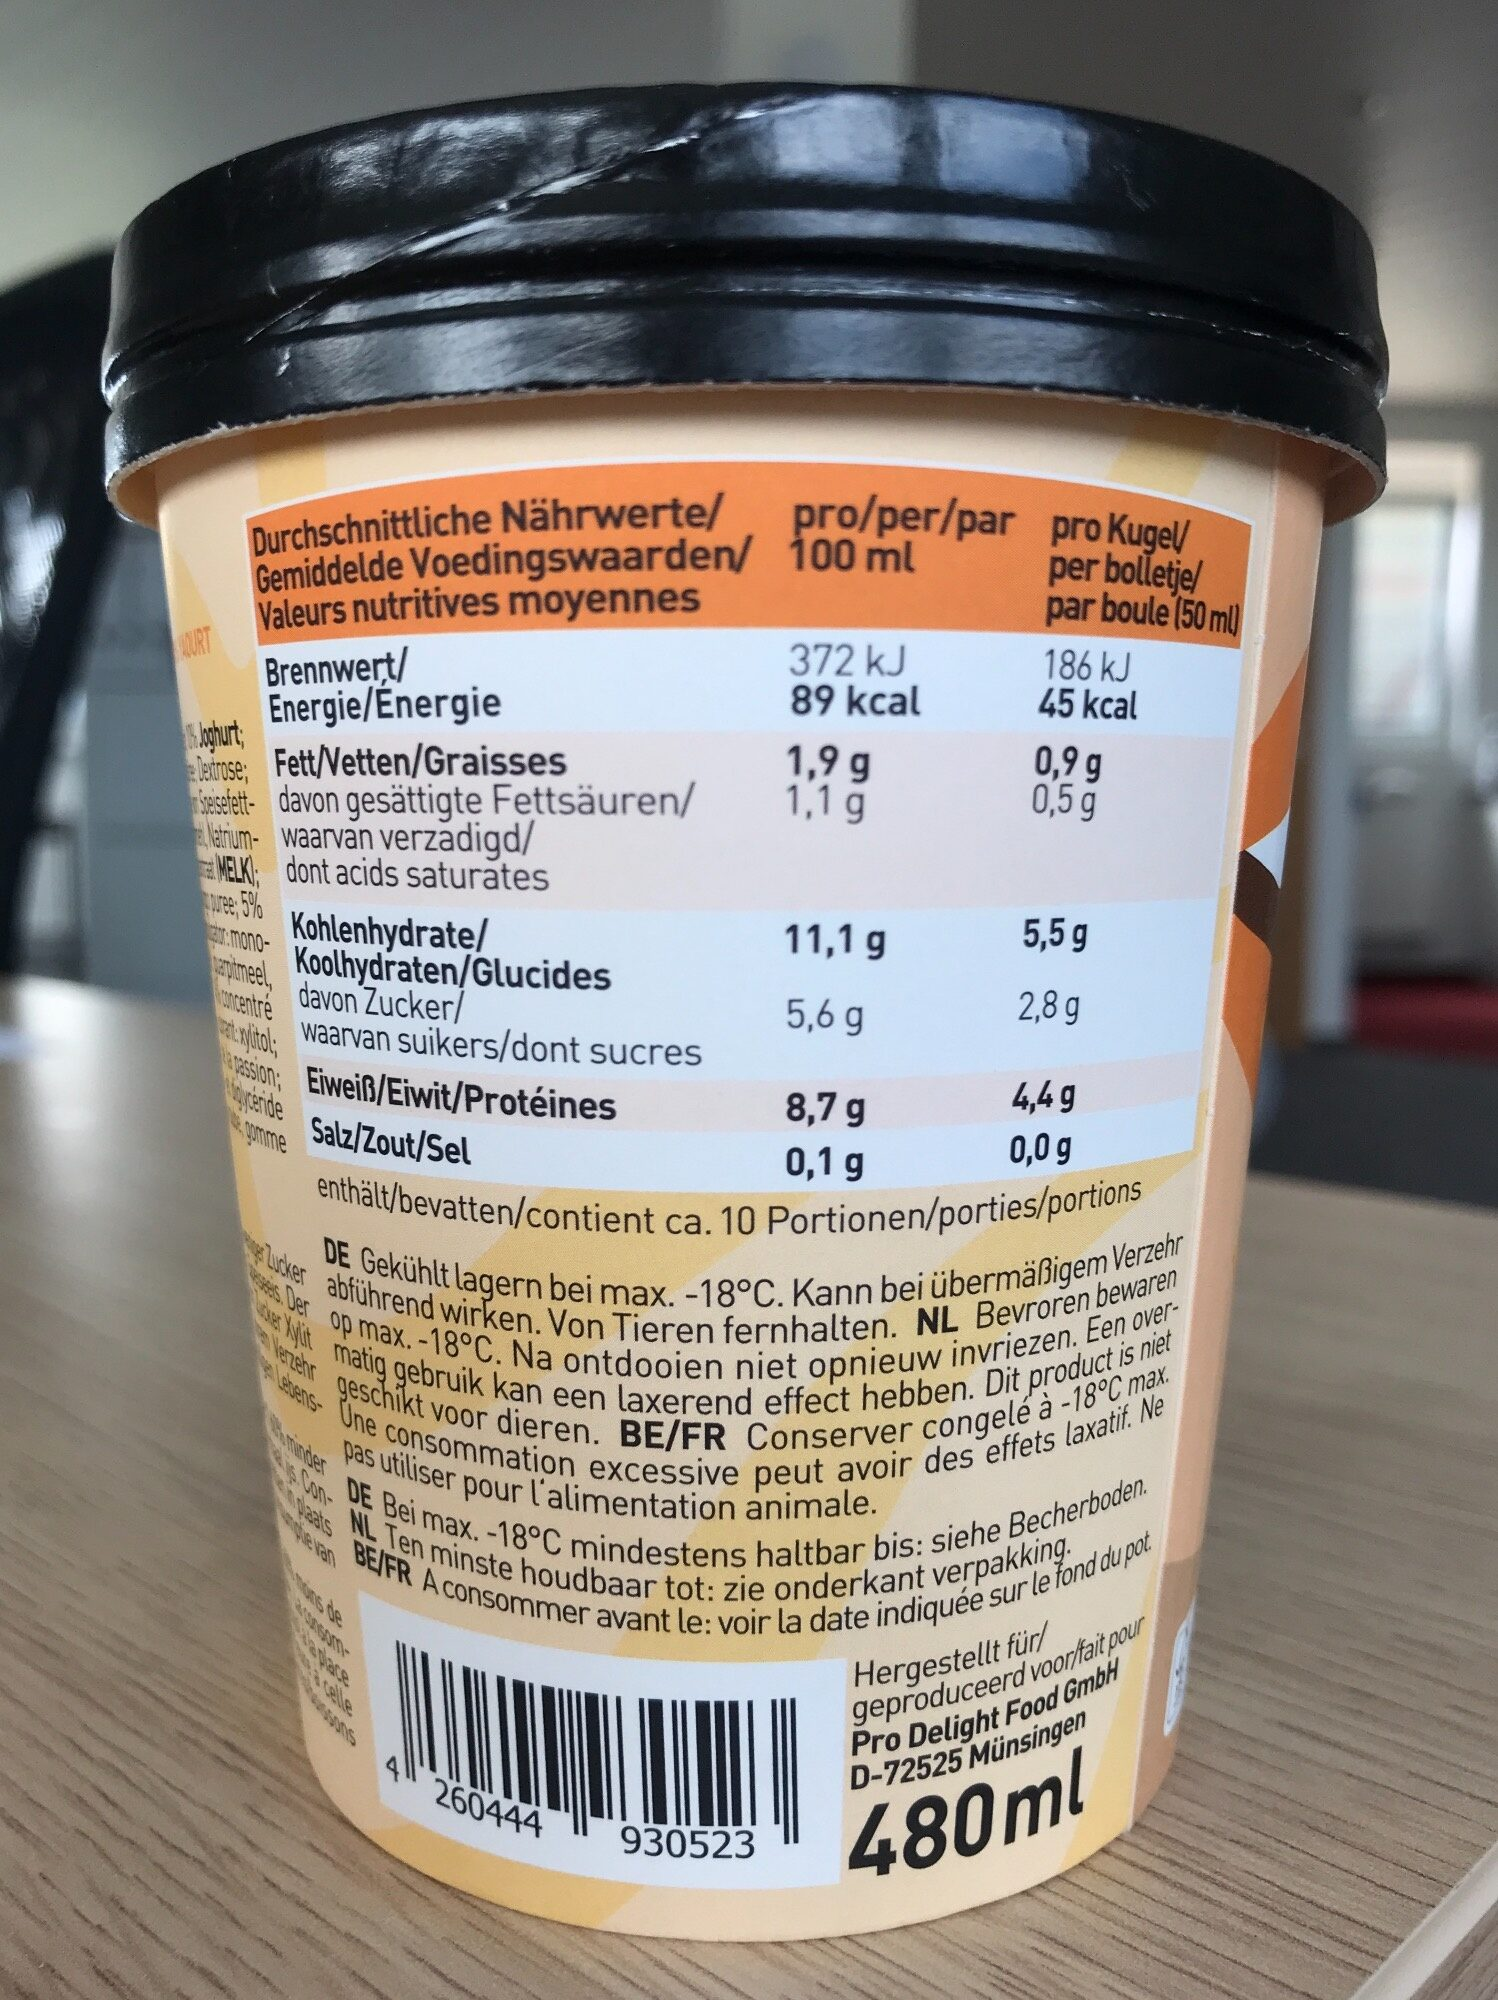 Pro Delight Wild Mango 480 ml - Nutrition facts